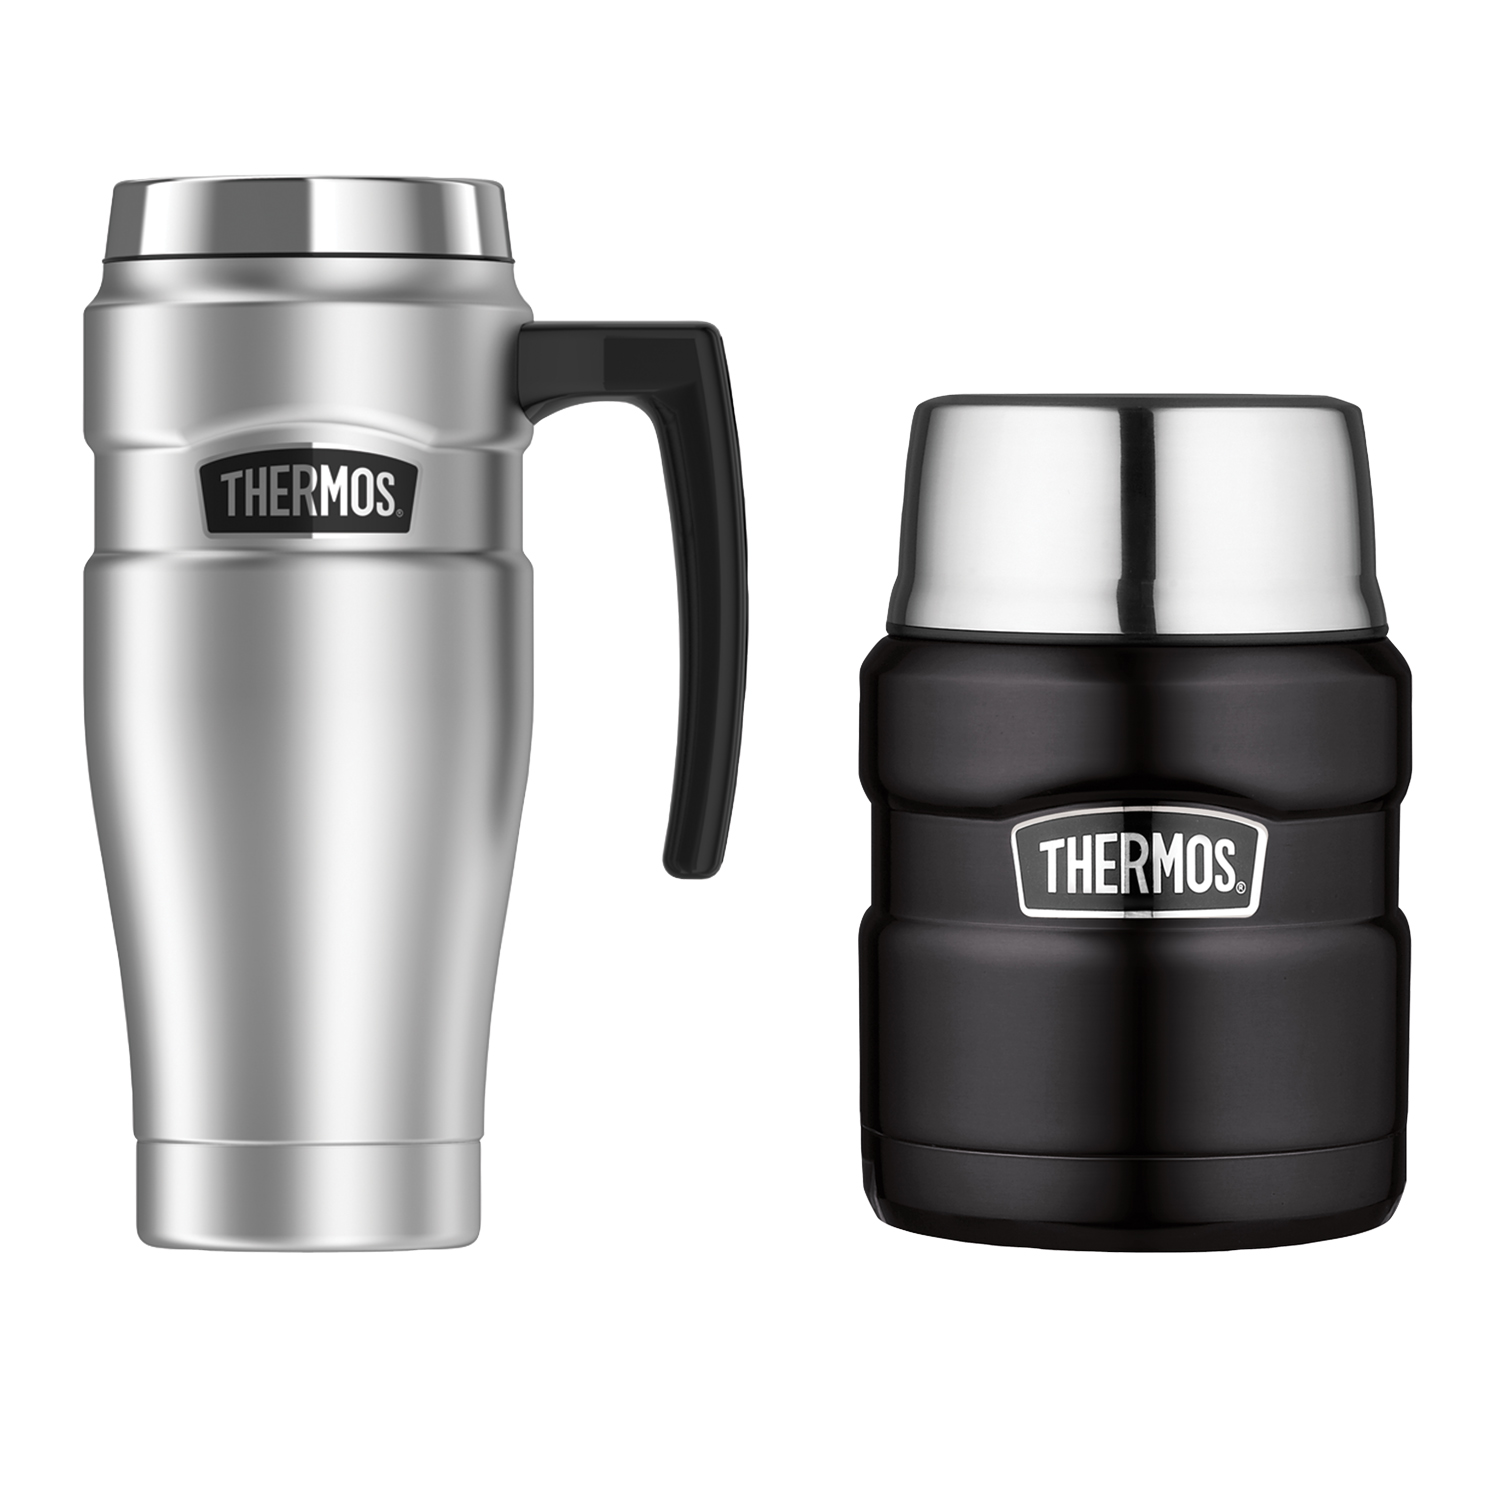 Thermos Stainless King 16-Ounce Travel Mug, Stainless Steel & Thermos Stainless King 16-Ounce Food Jar with Folding Spoon, Matte Black